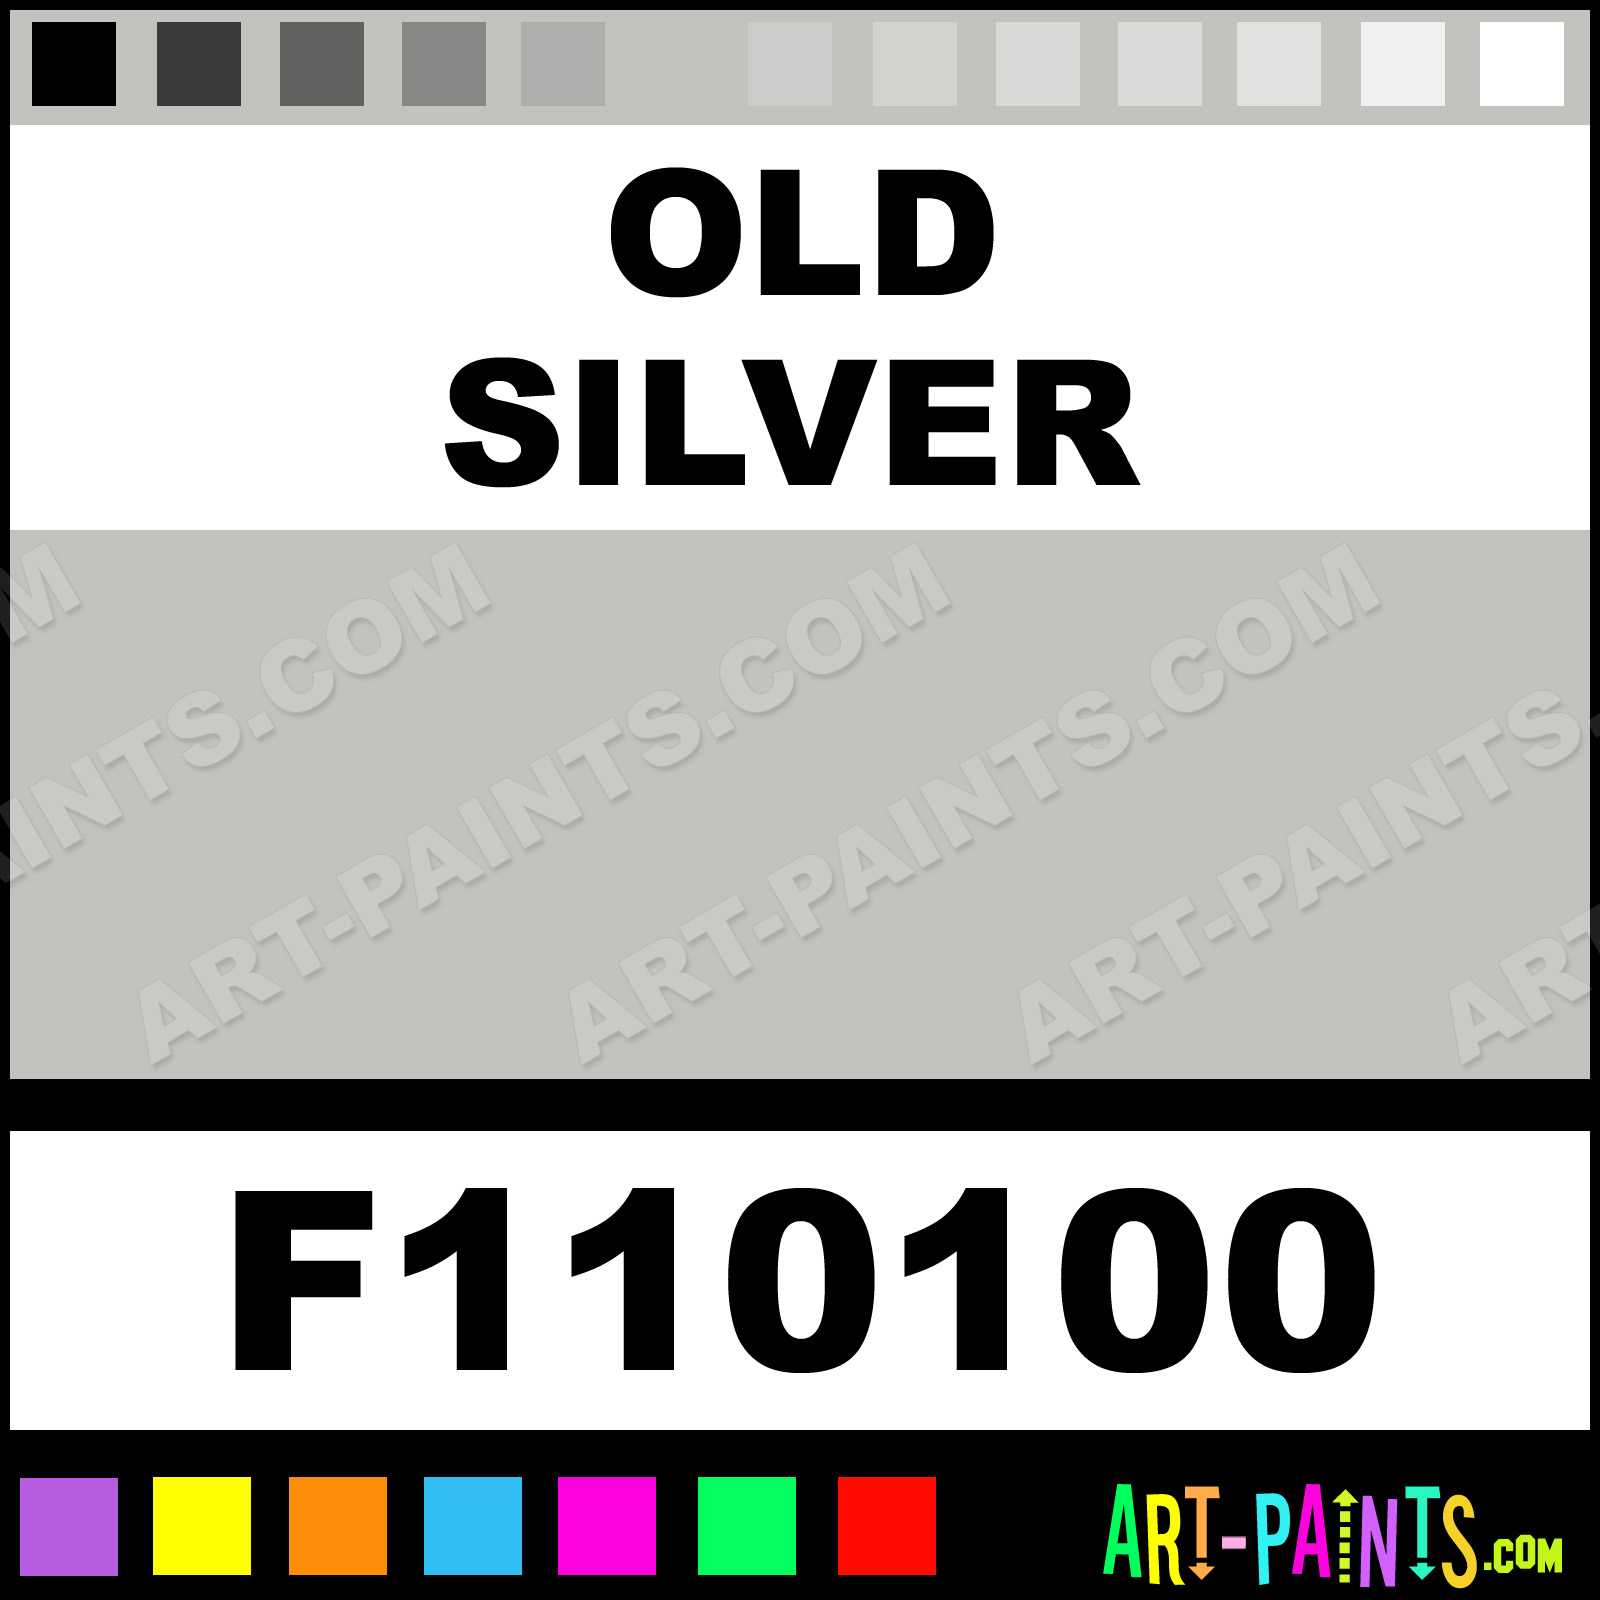 Old silver railroad enamel paints f110100 old silver paint old silver railroad enamel paints f110100 old silver paint old silver color floquil railroad paint c1c3be art paints geenschuldenfo Gallery